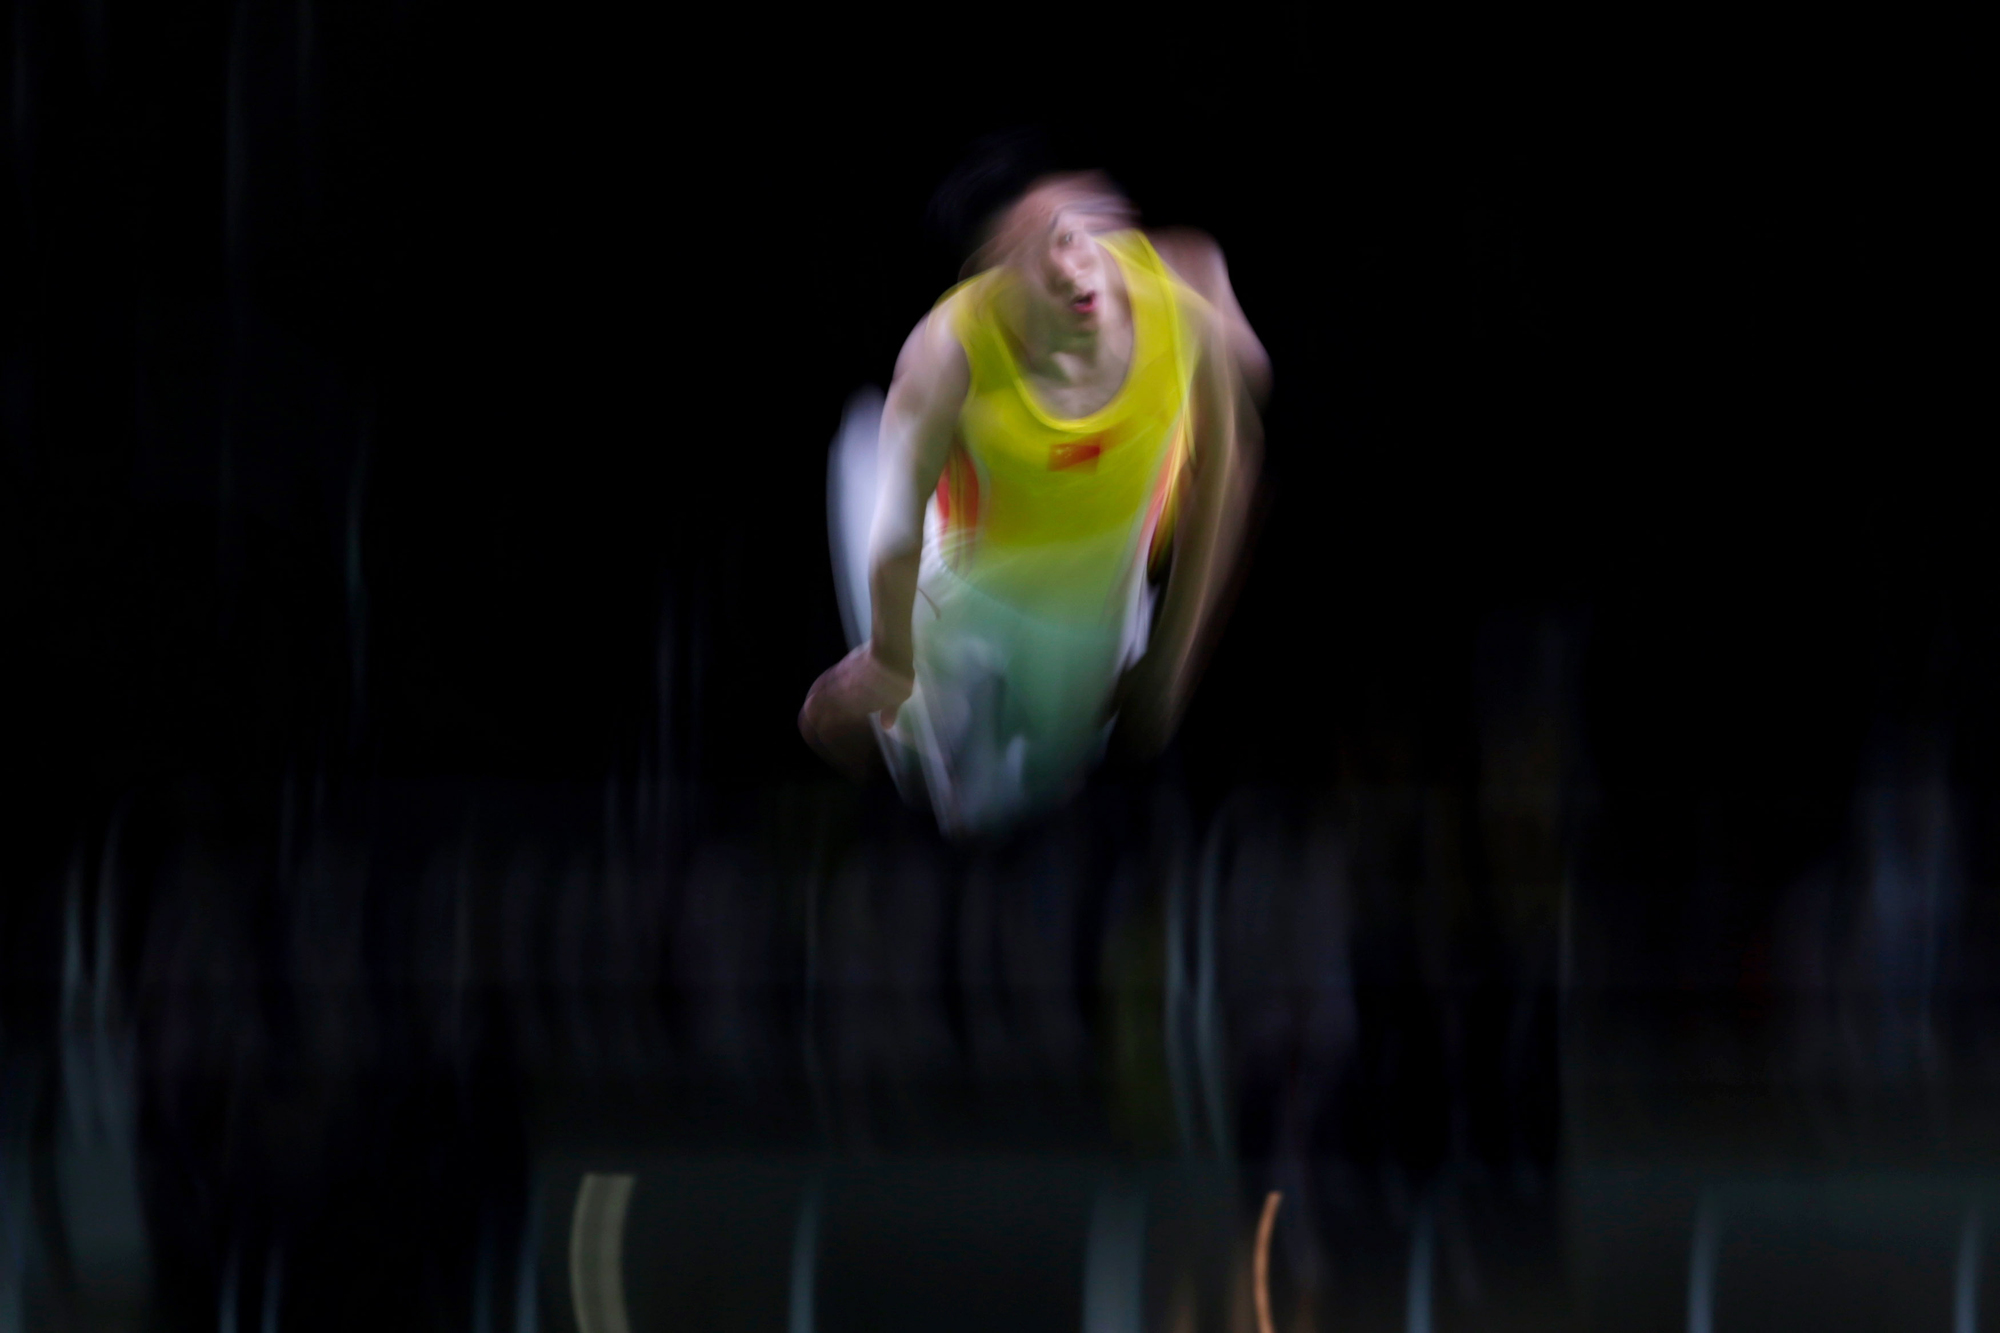 China's Dong Dong warms up before the Men's Trampoline Gymnastics finals in the Rio Olympic Stadium at the 2016 Rio Summer Olympics in Rio de Janeiro, Brazil, on August 13, 2016.